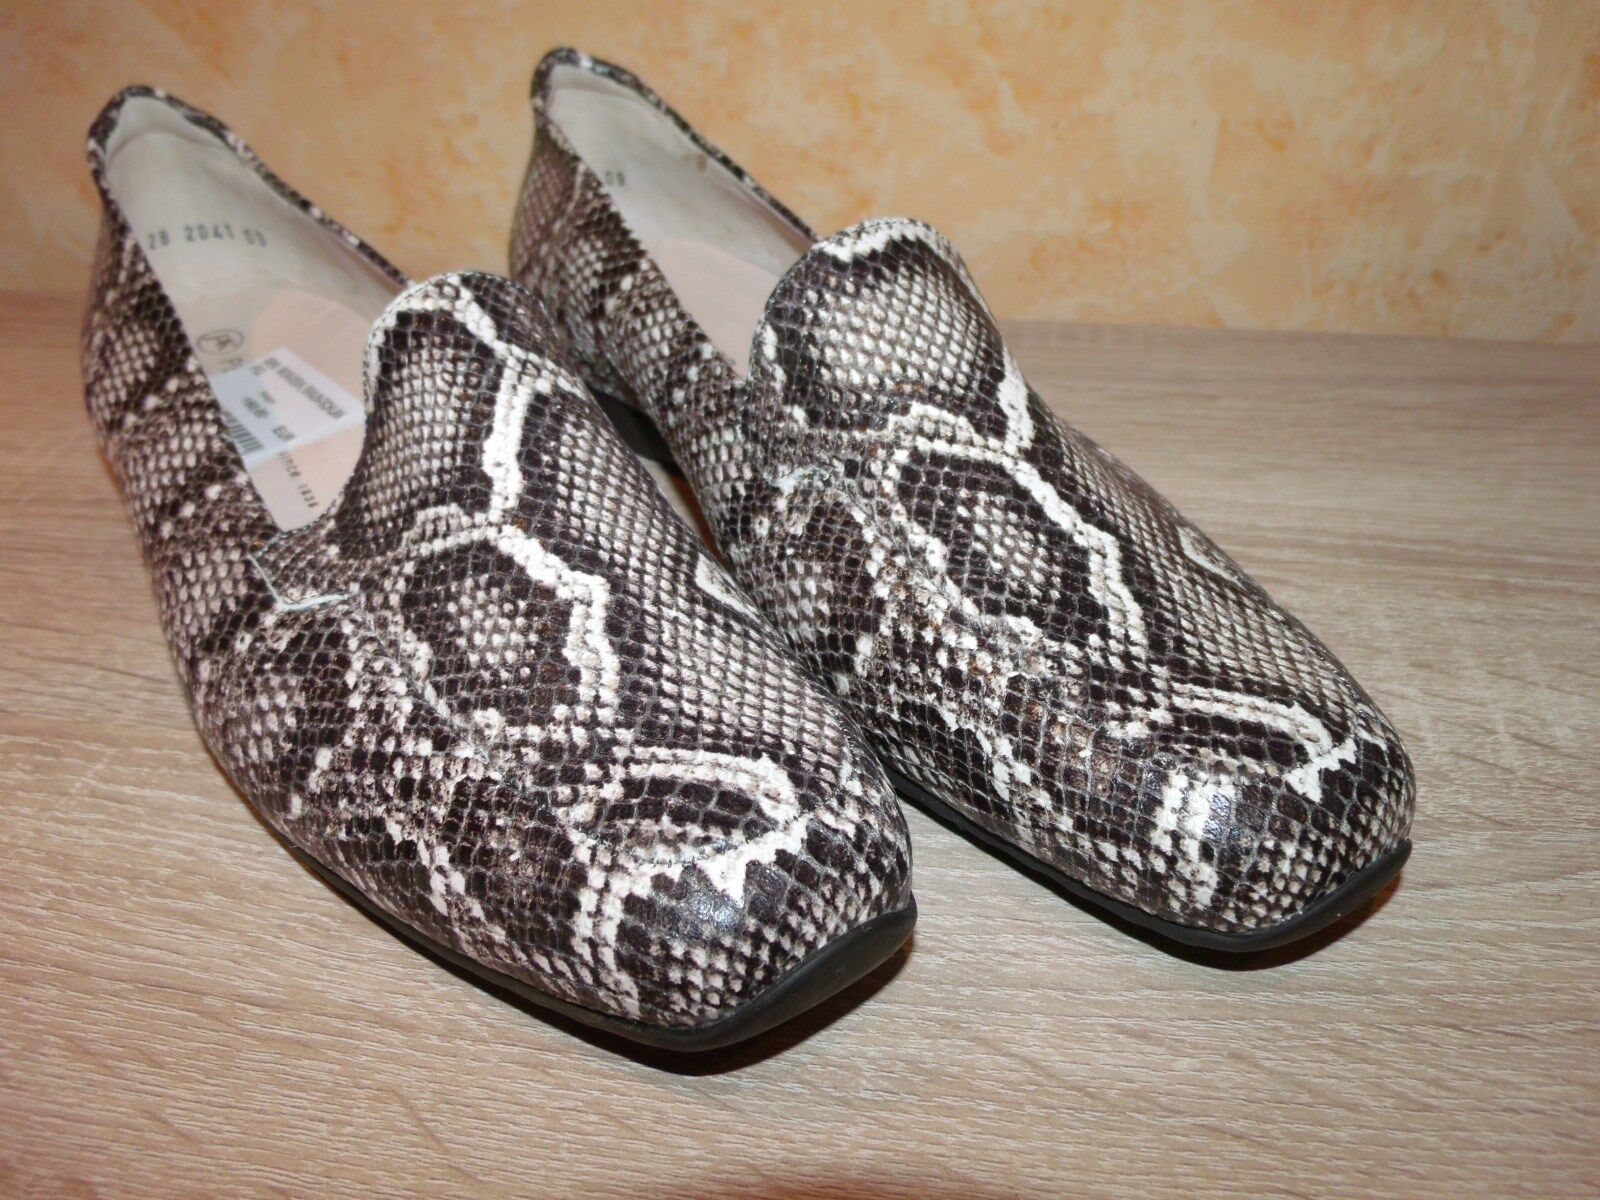 Peter Marrone Kaiser mokkassin Slipper Nuovo Taglia 9 43 In Marrone Peter & Pelle nel schlangenprint 514e61